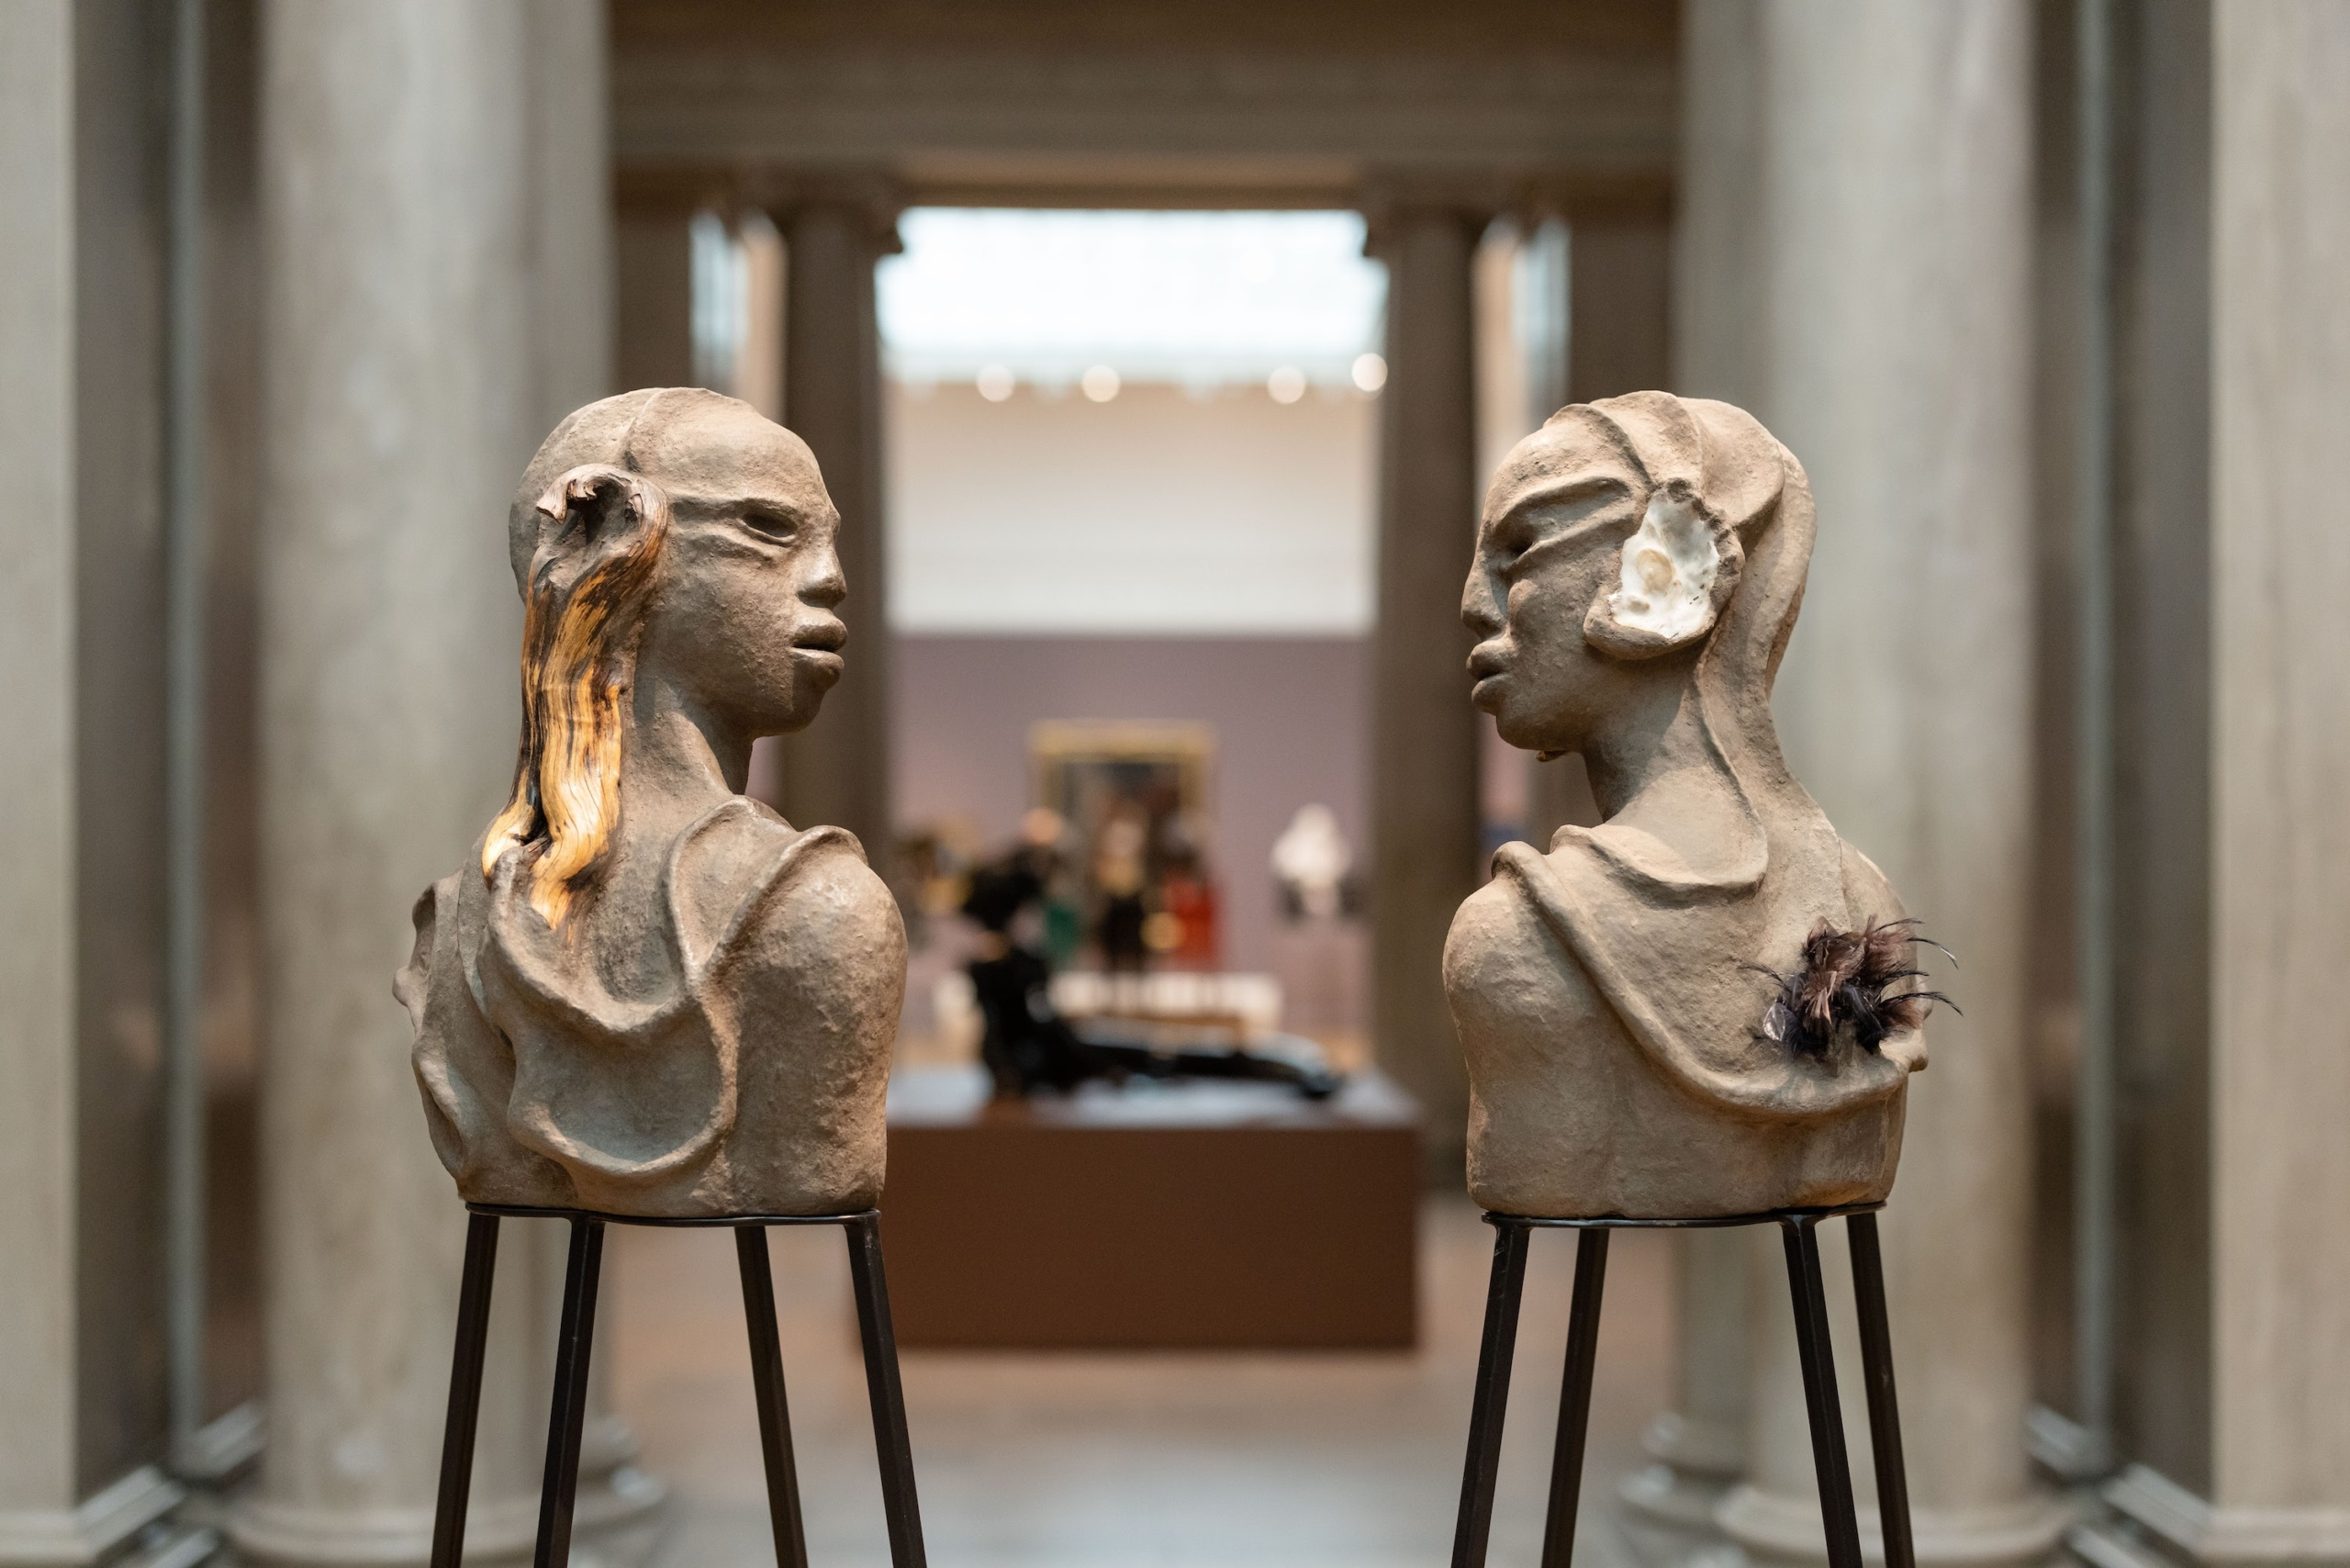 Two bust sculptures facing each other in museum space